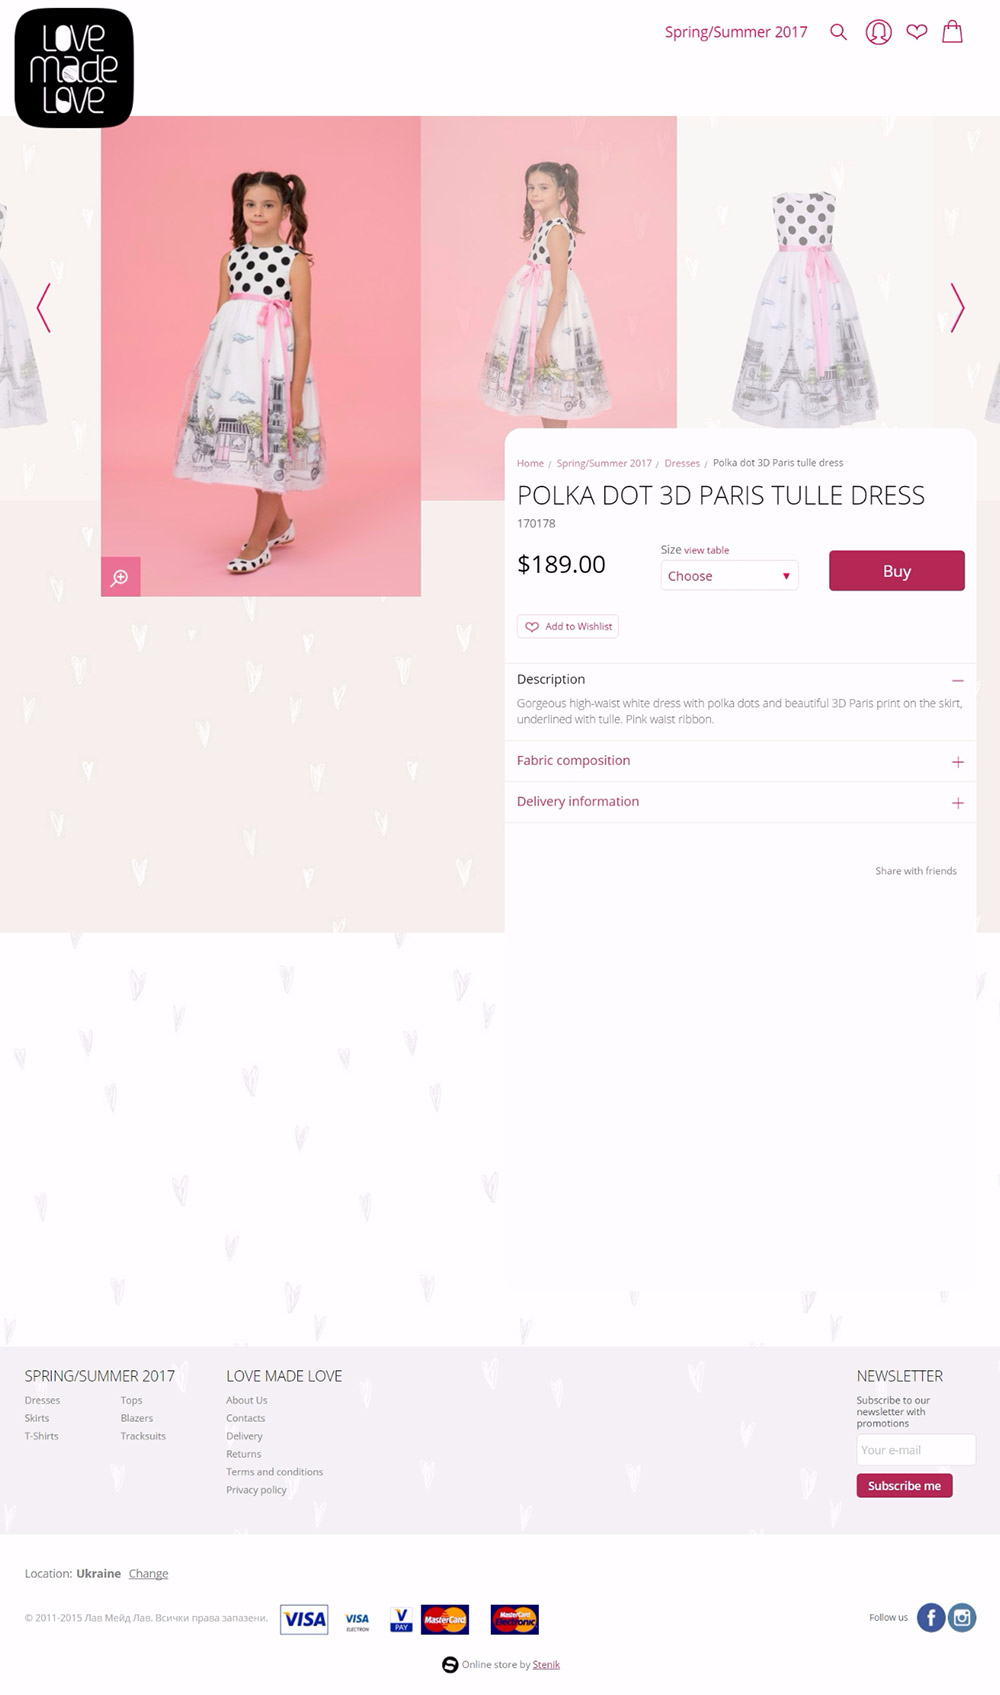 Online store for Love made love, Love Made love - Online Shops, Stenik, Magento